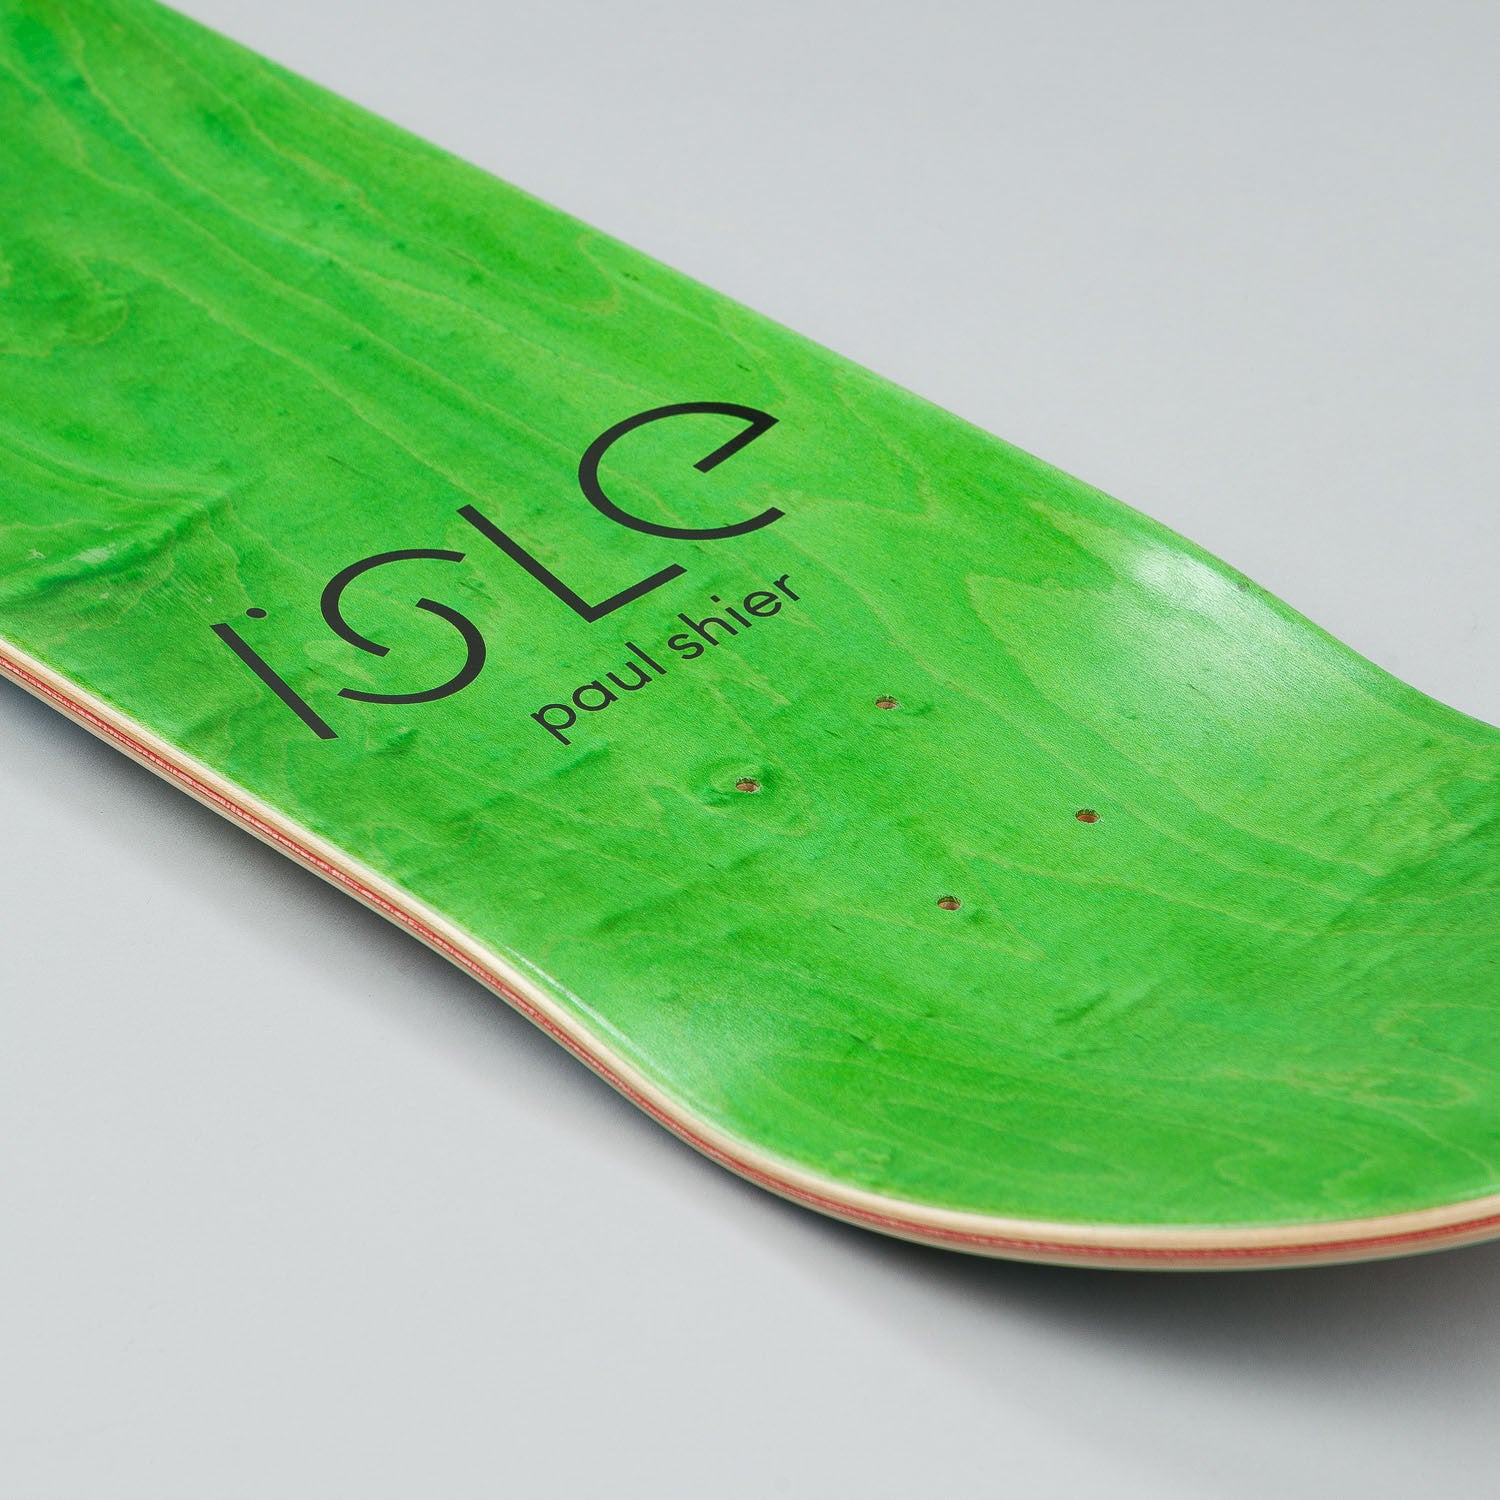 Isle Paint & Pigment Series Deck - Paul Shier 8.25""